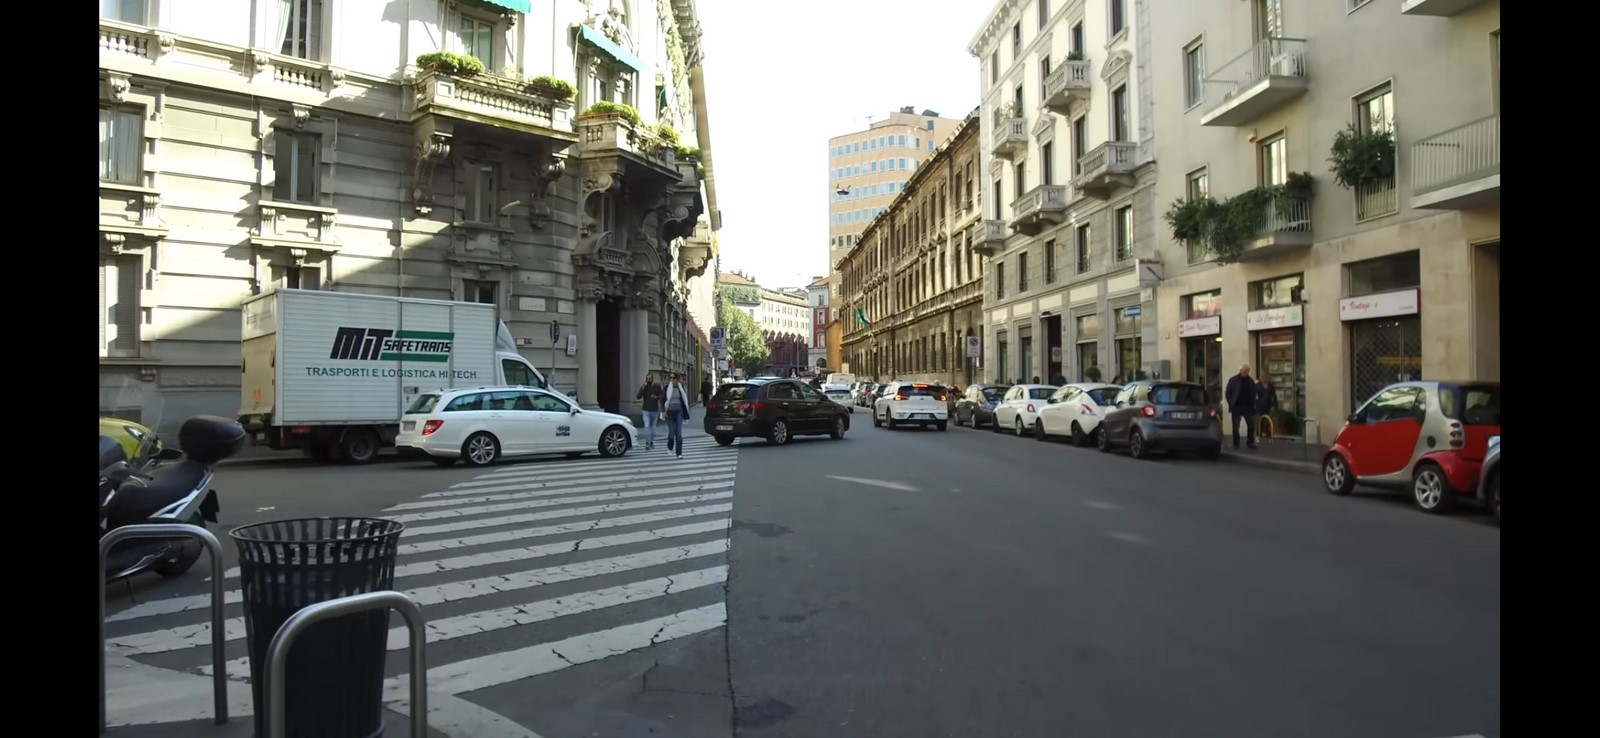 Architecture of Cities: Milan: The economic heart of Italy sheet11